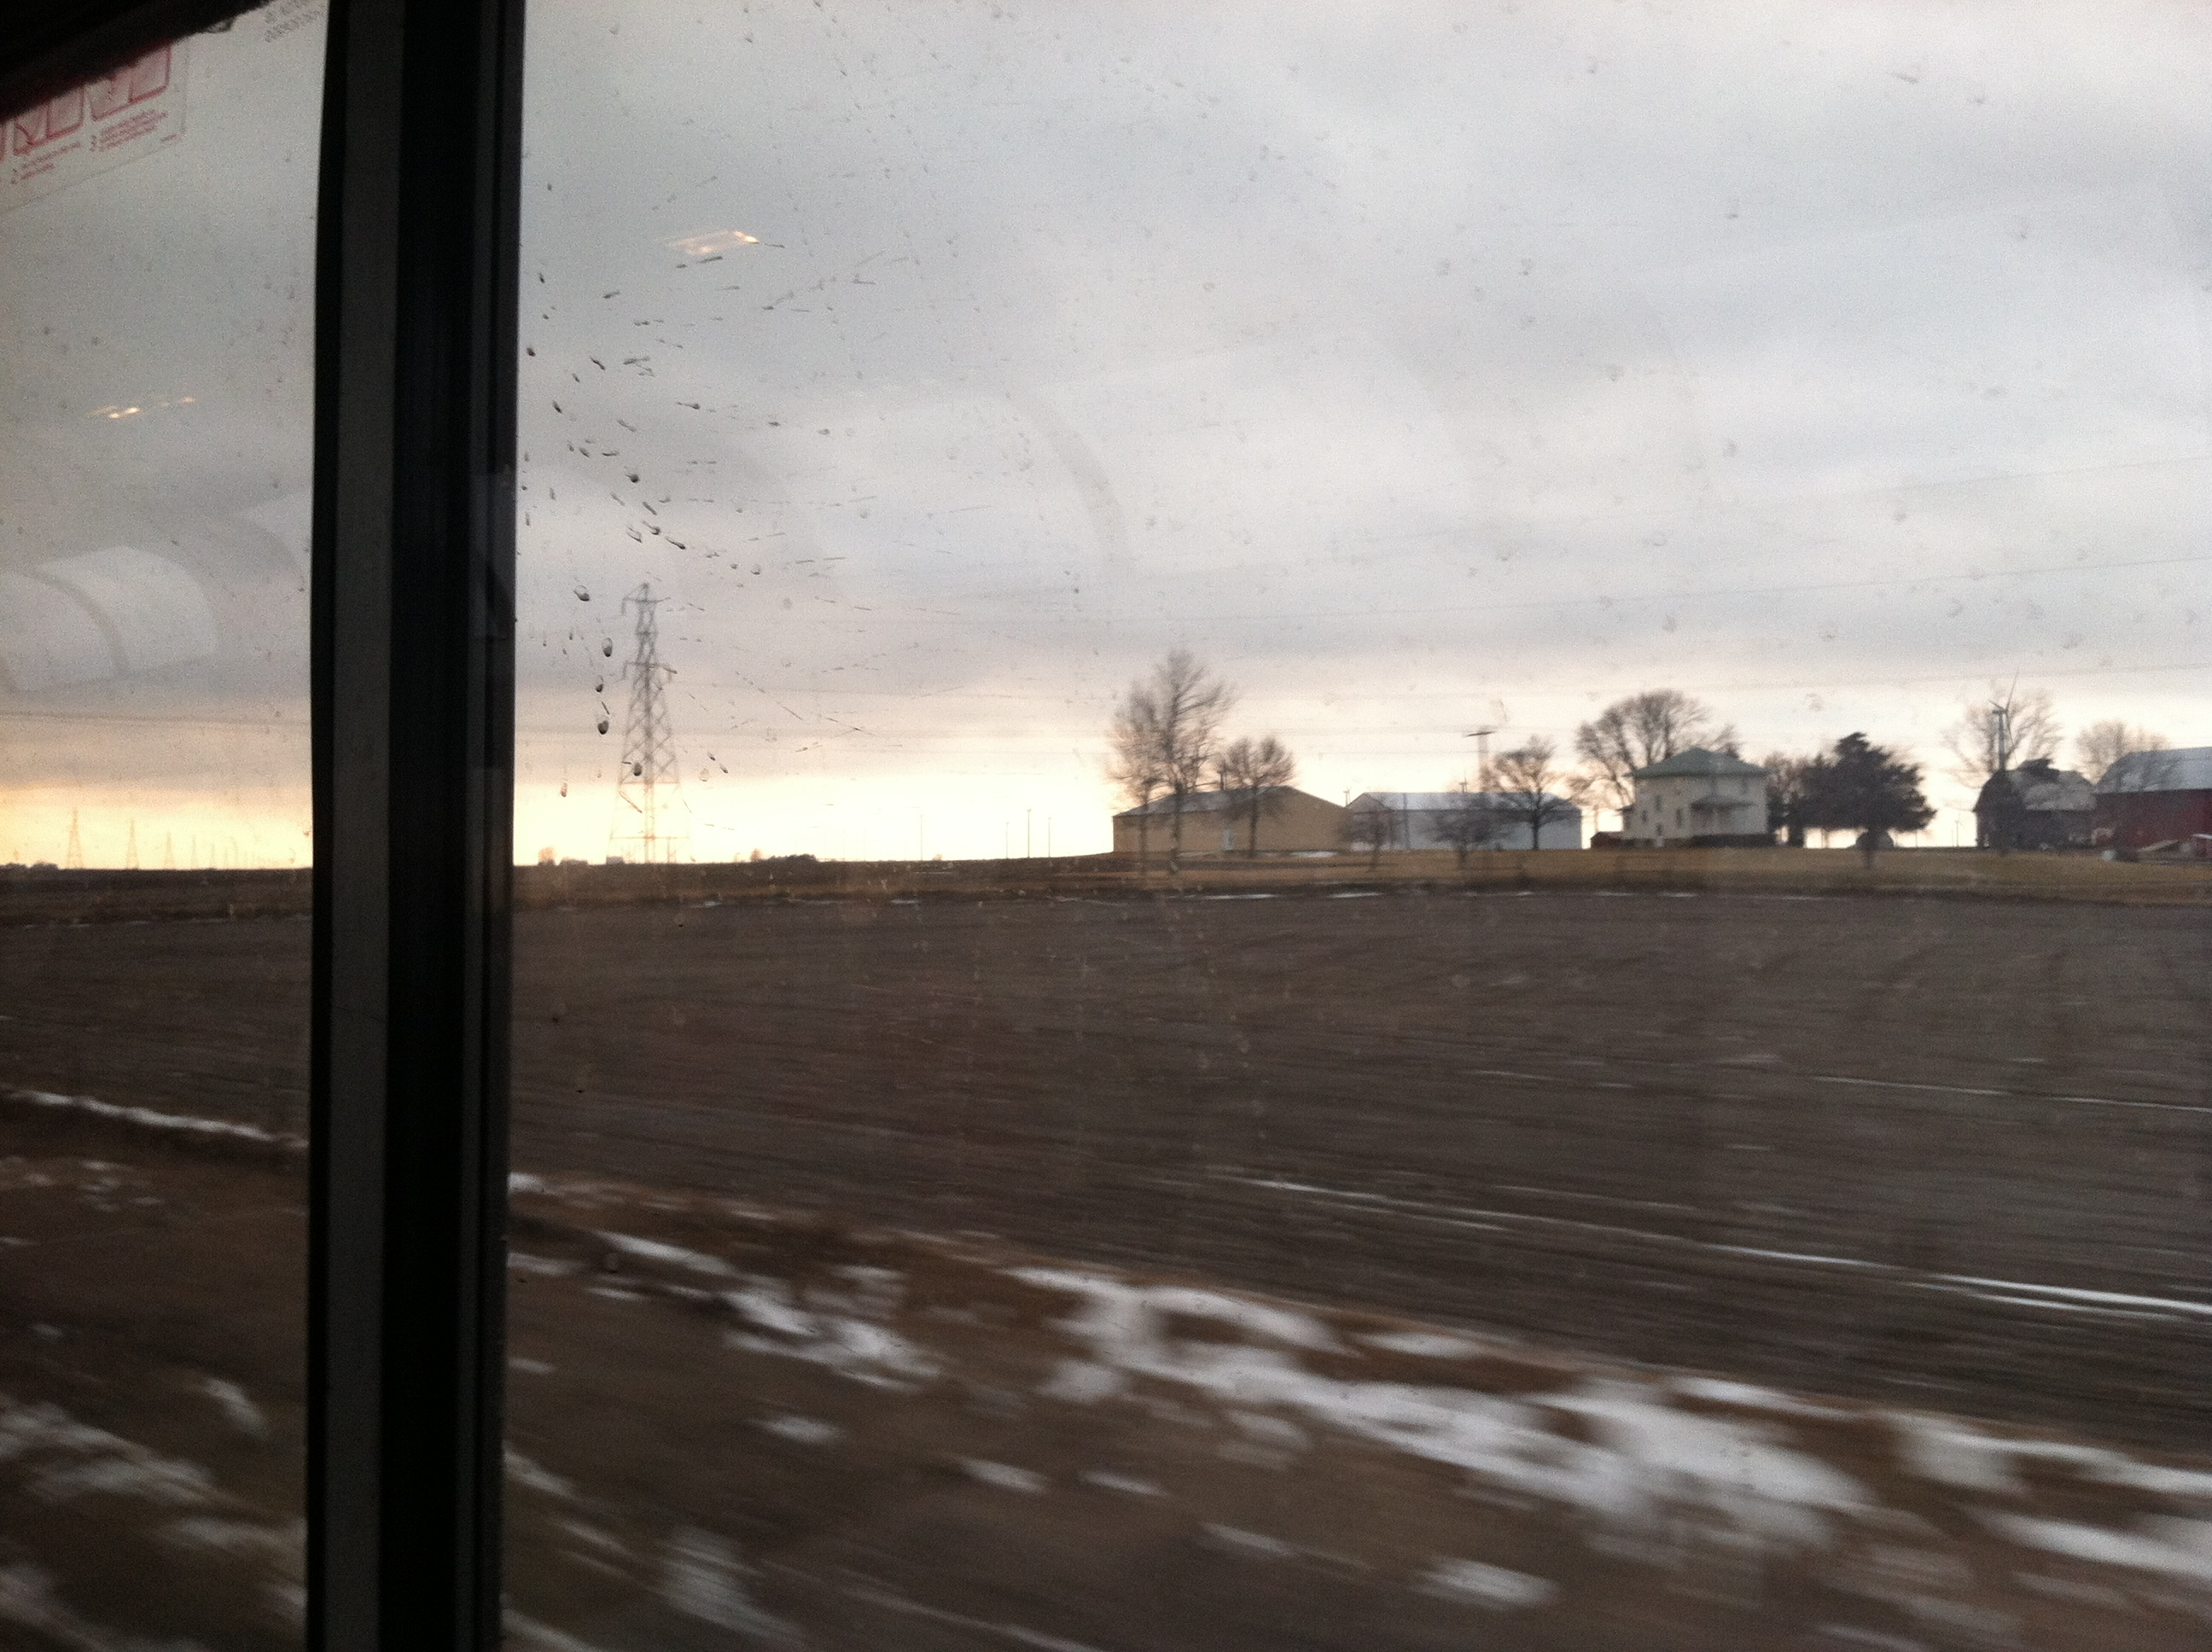 View from the dining car as the sun was setting.